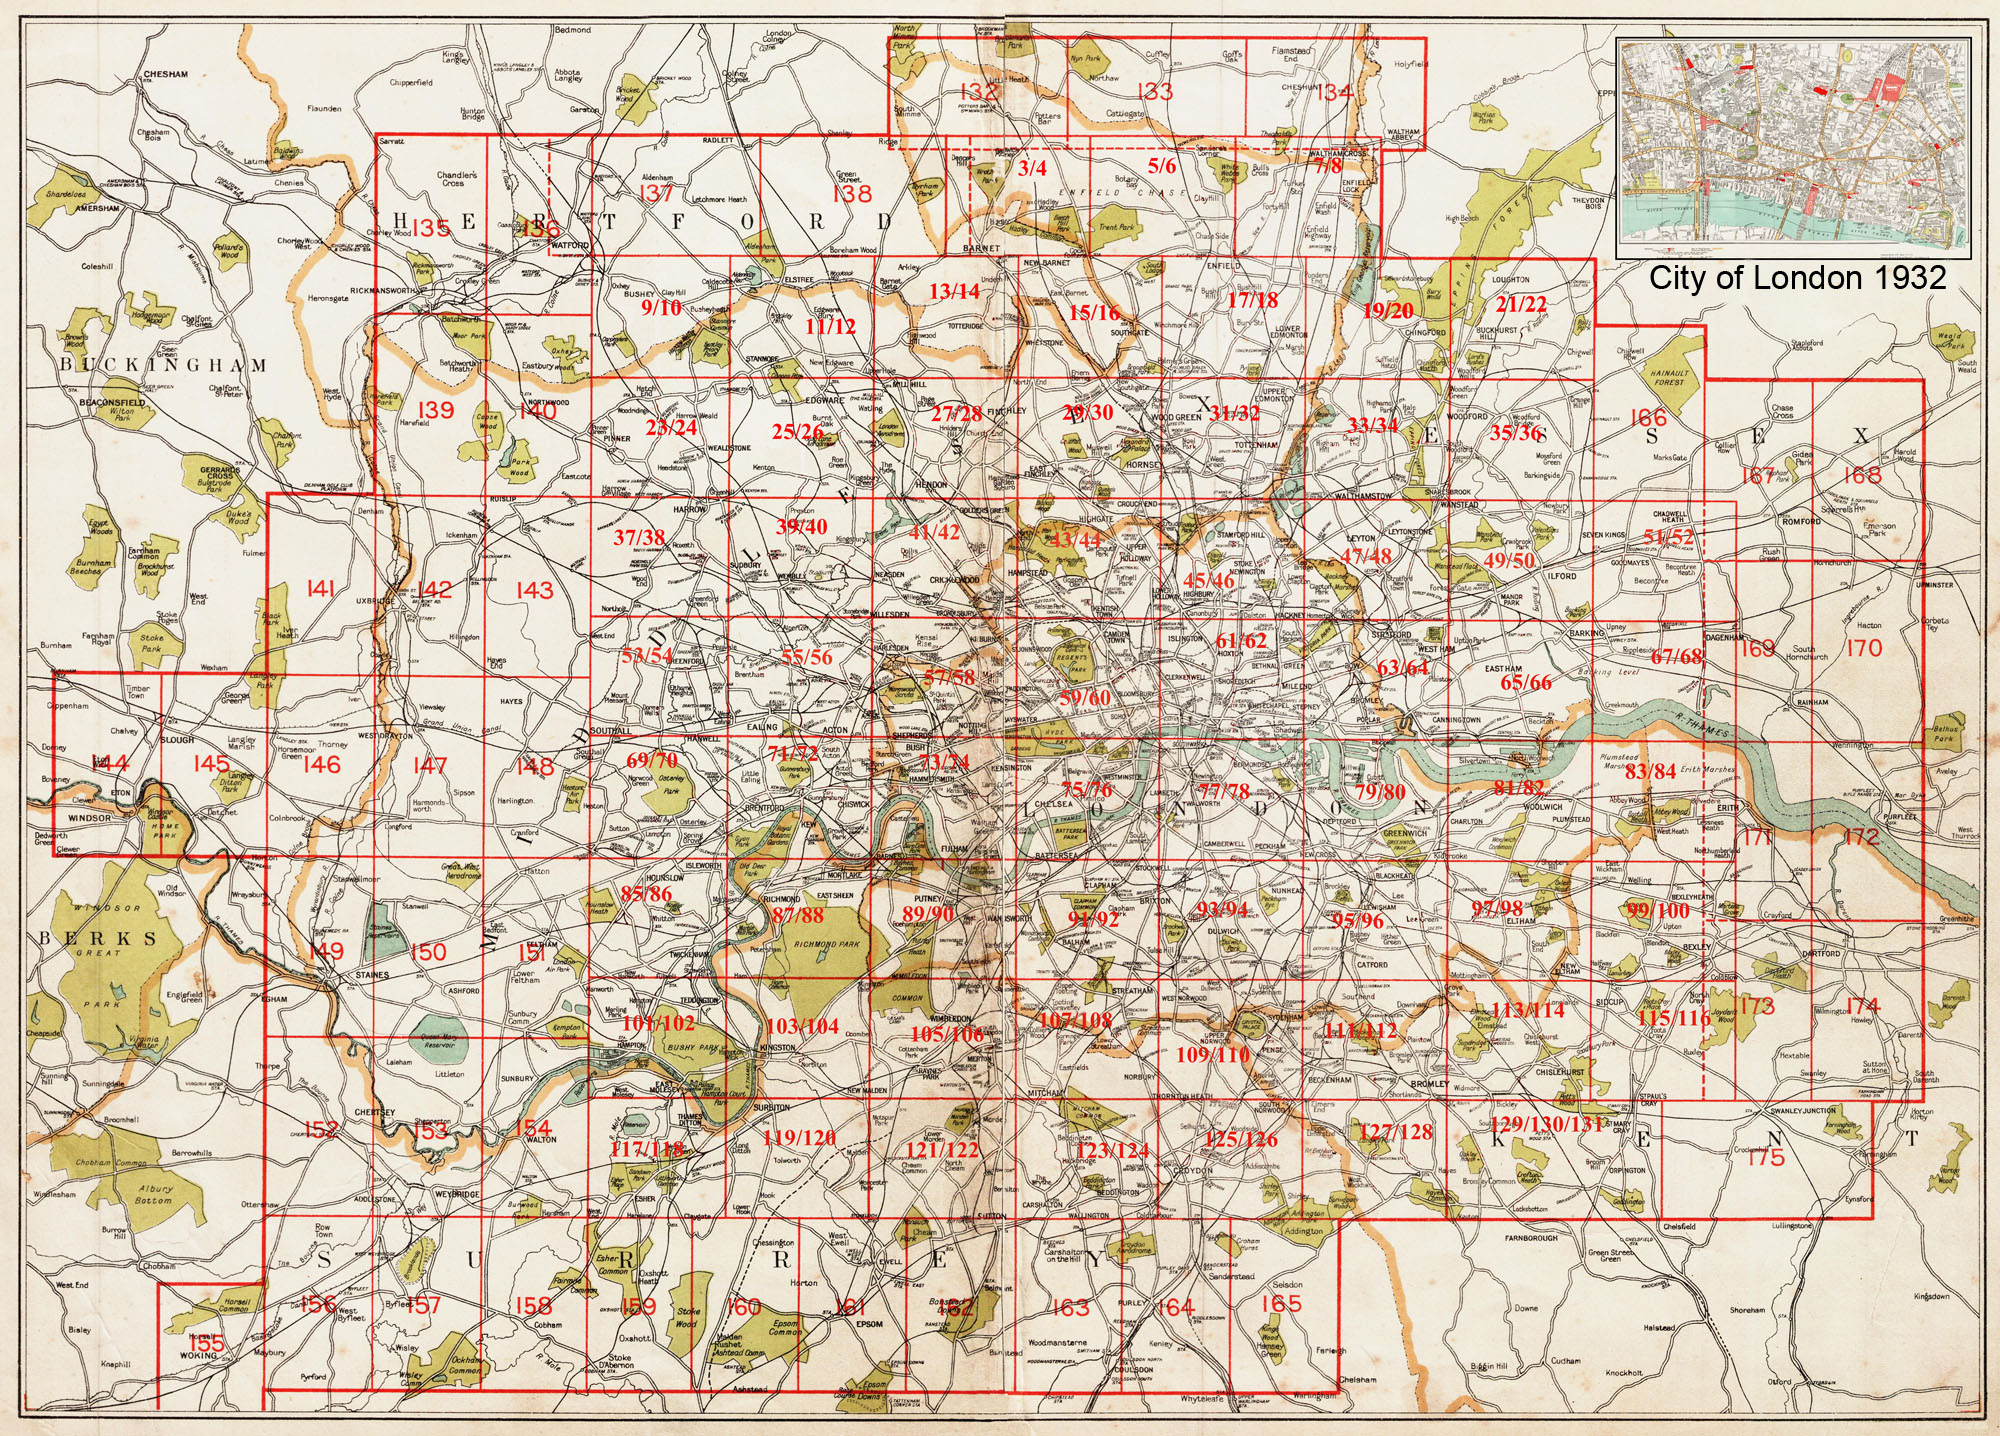 Map Of Greater London Area.Old Maps Of London And Greater London In 1932 As Instant Downloads